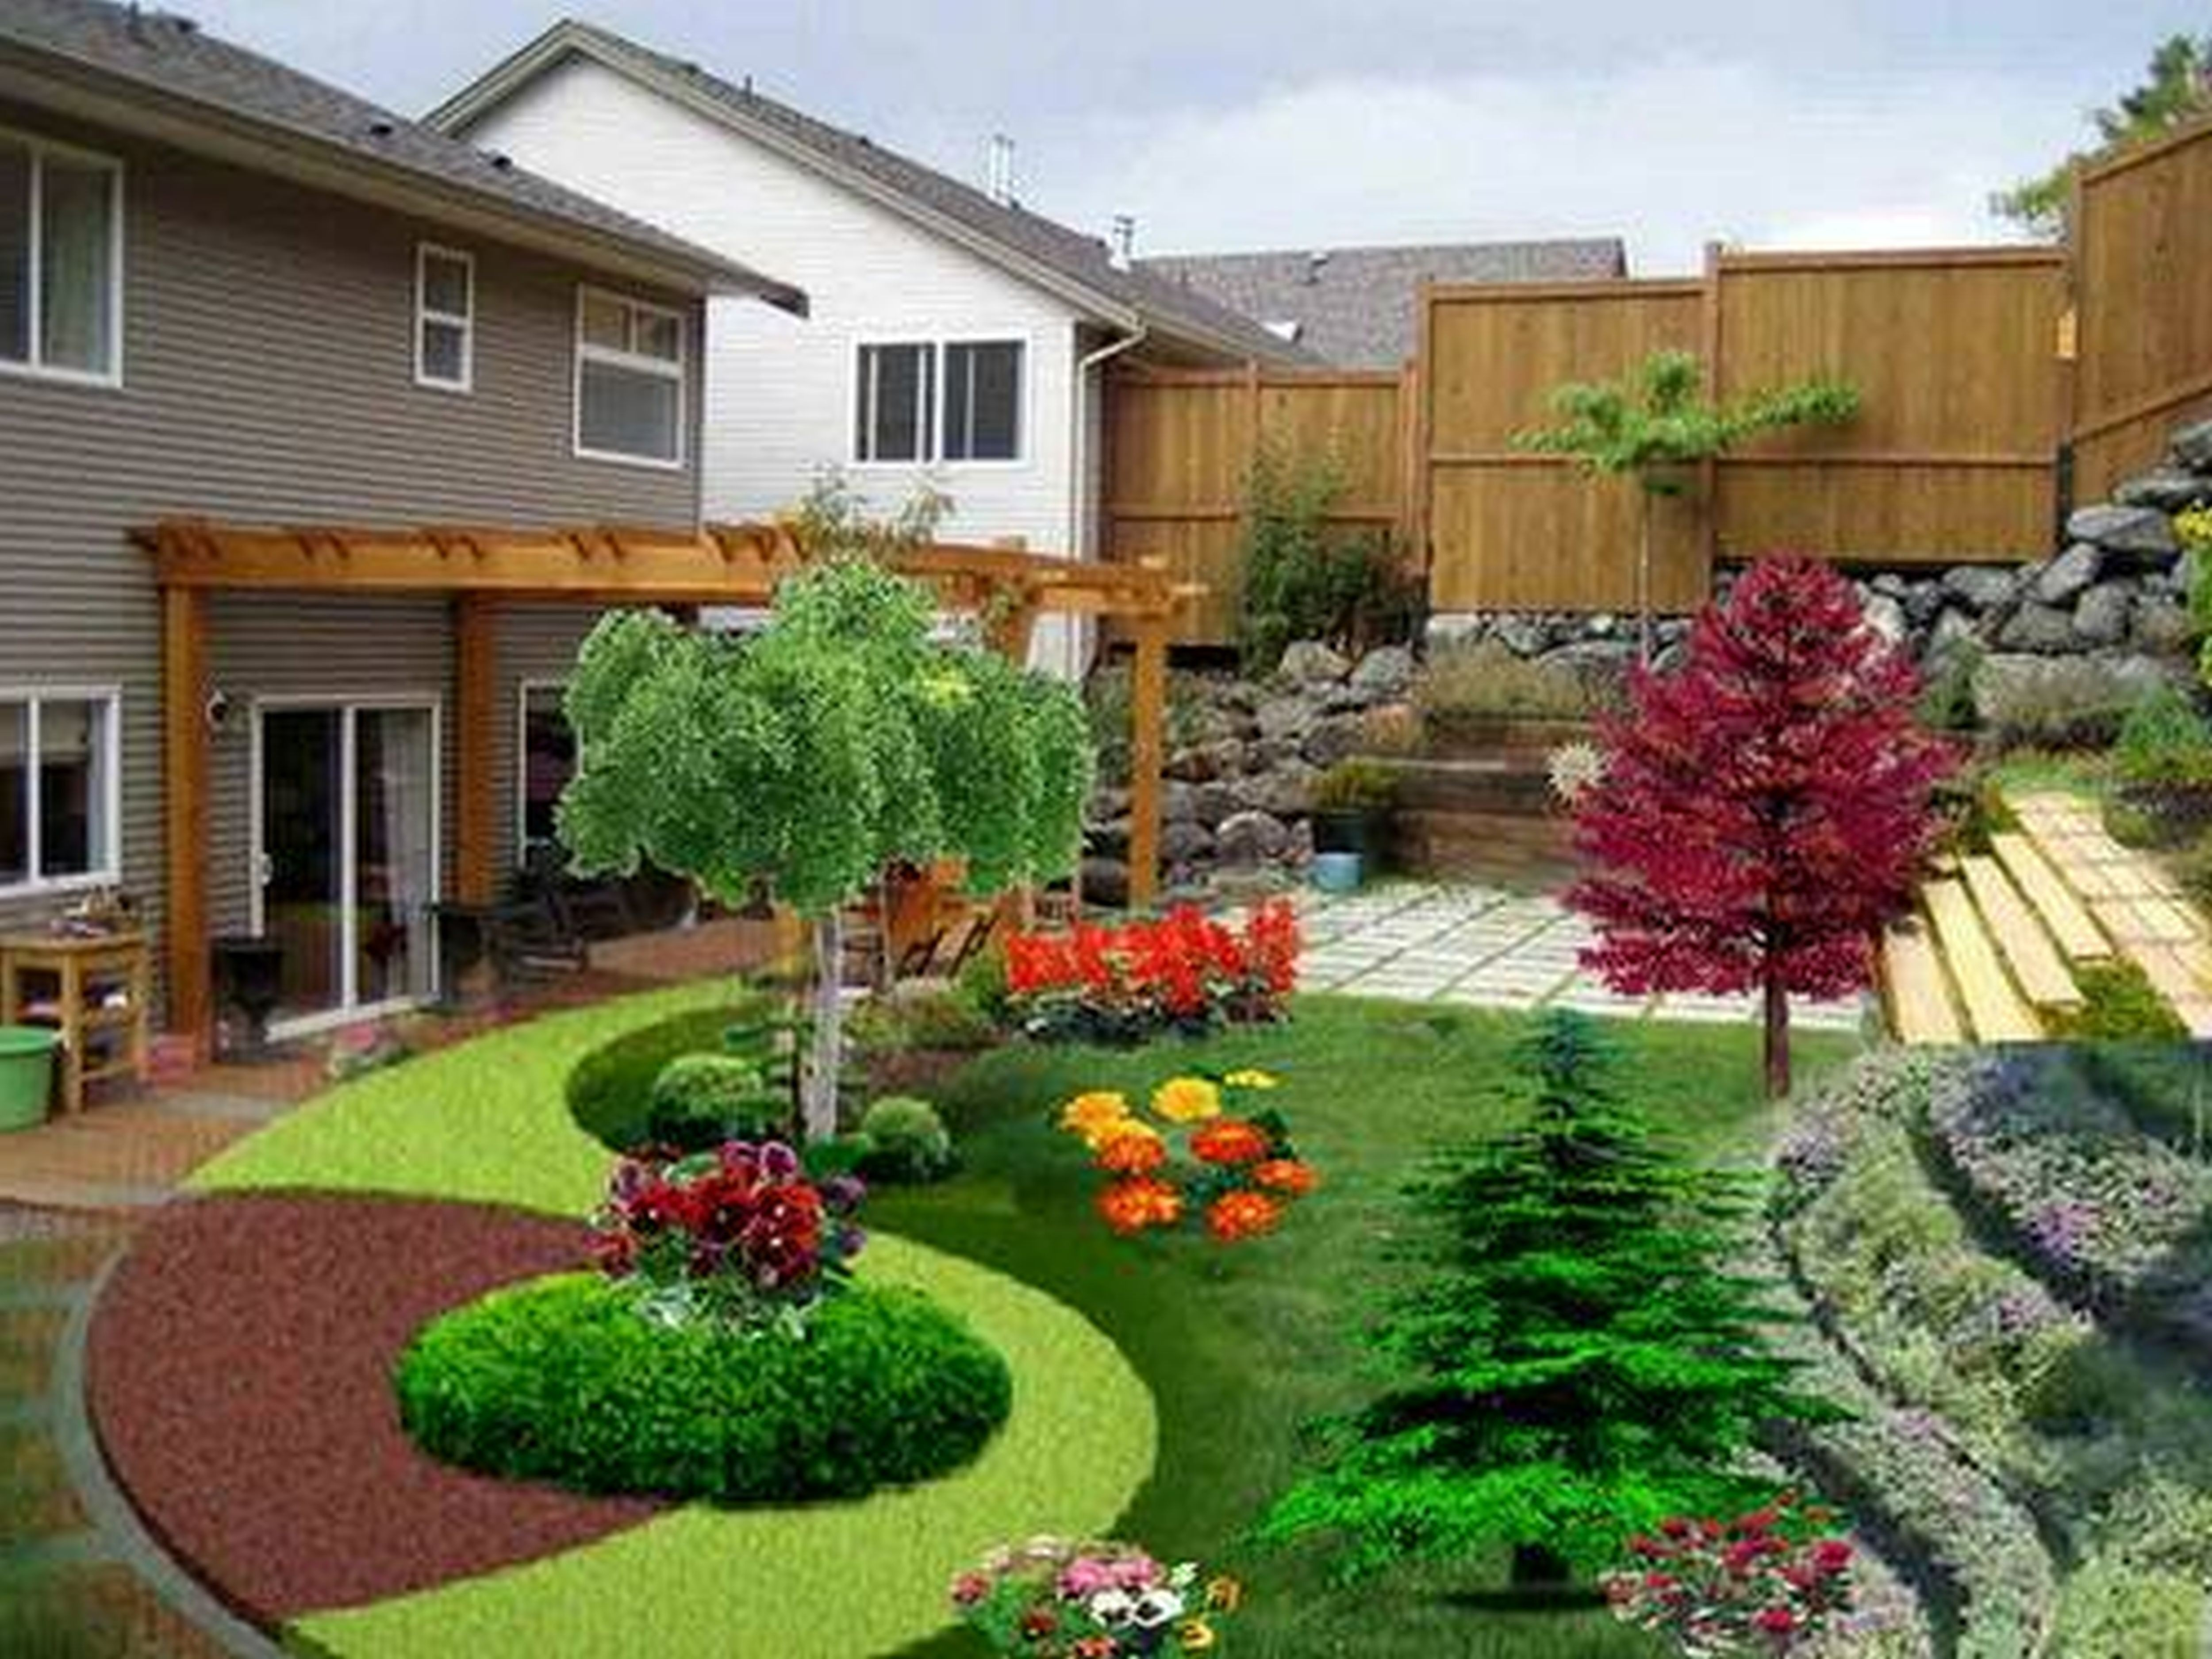 Nice 109 Latest Elegant Backyard Design You Need to Know Improvement Backyard is a yard at the back of a house mon in suburban developments in the